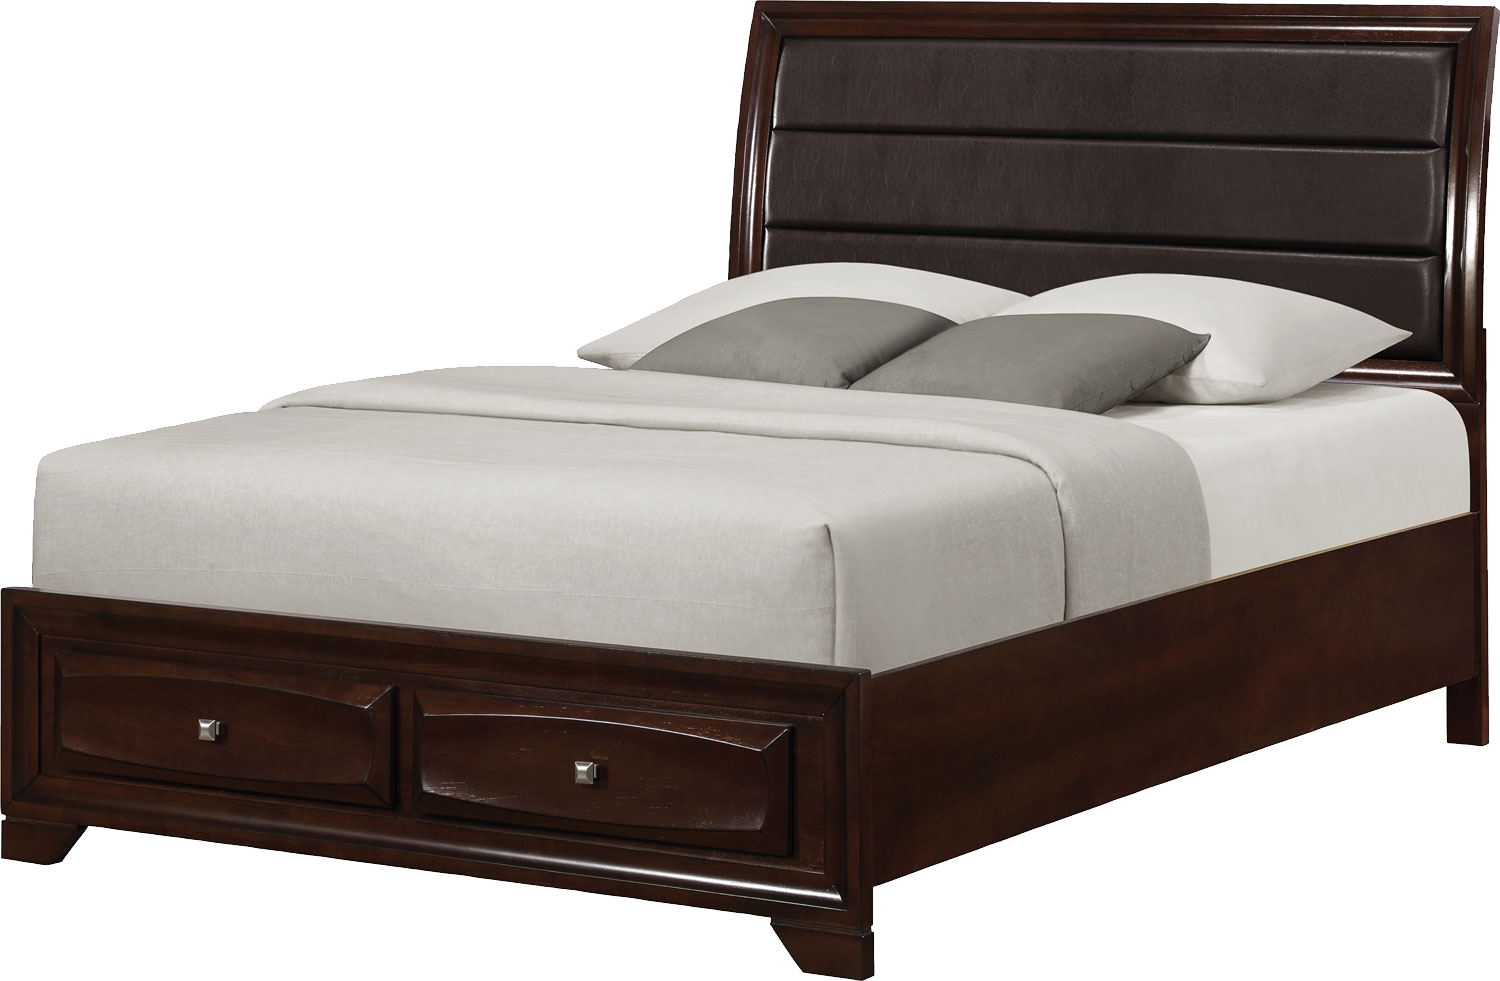 Bed PNG Image.